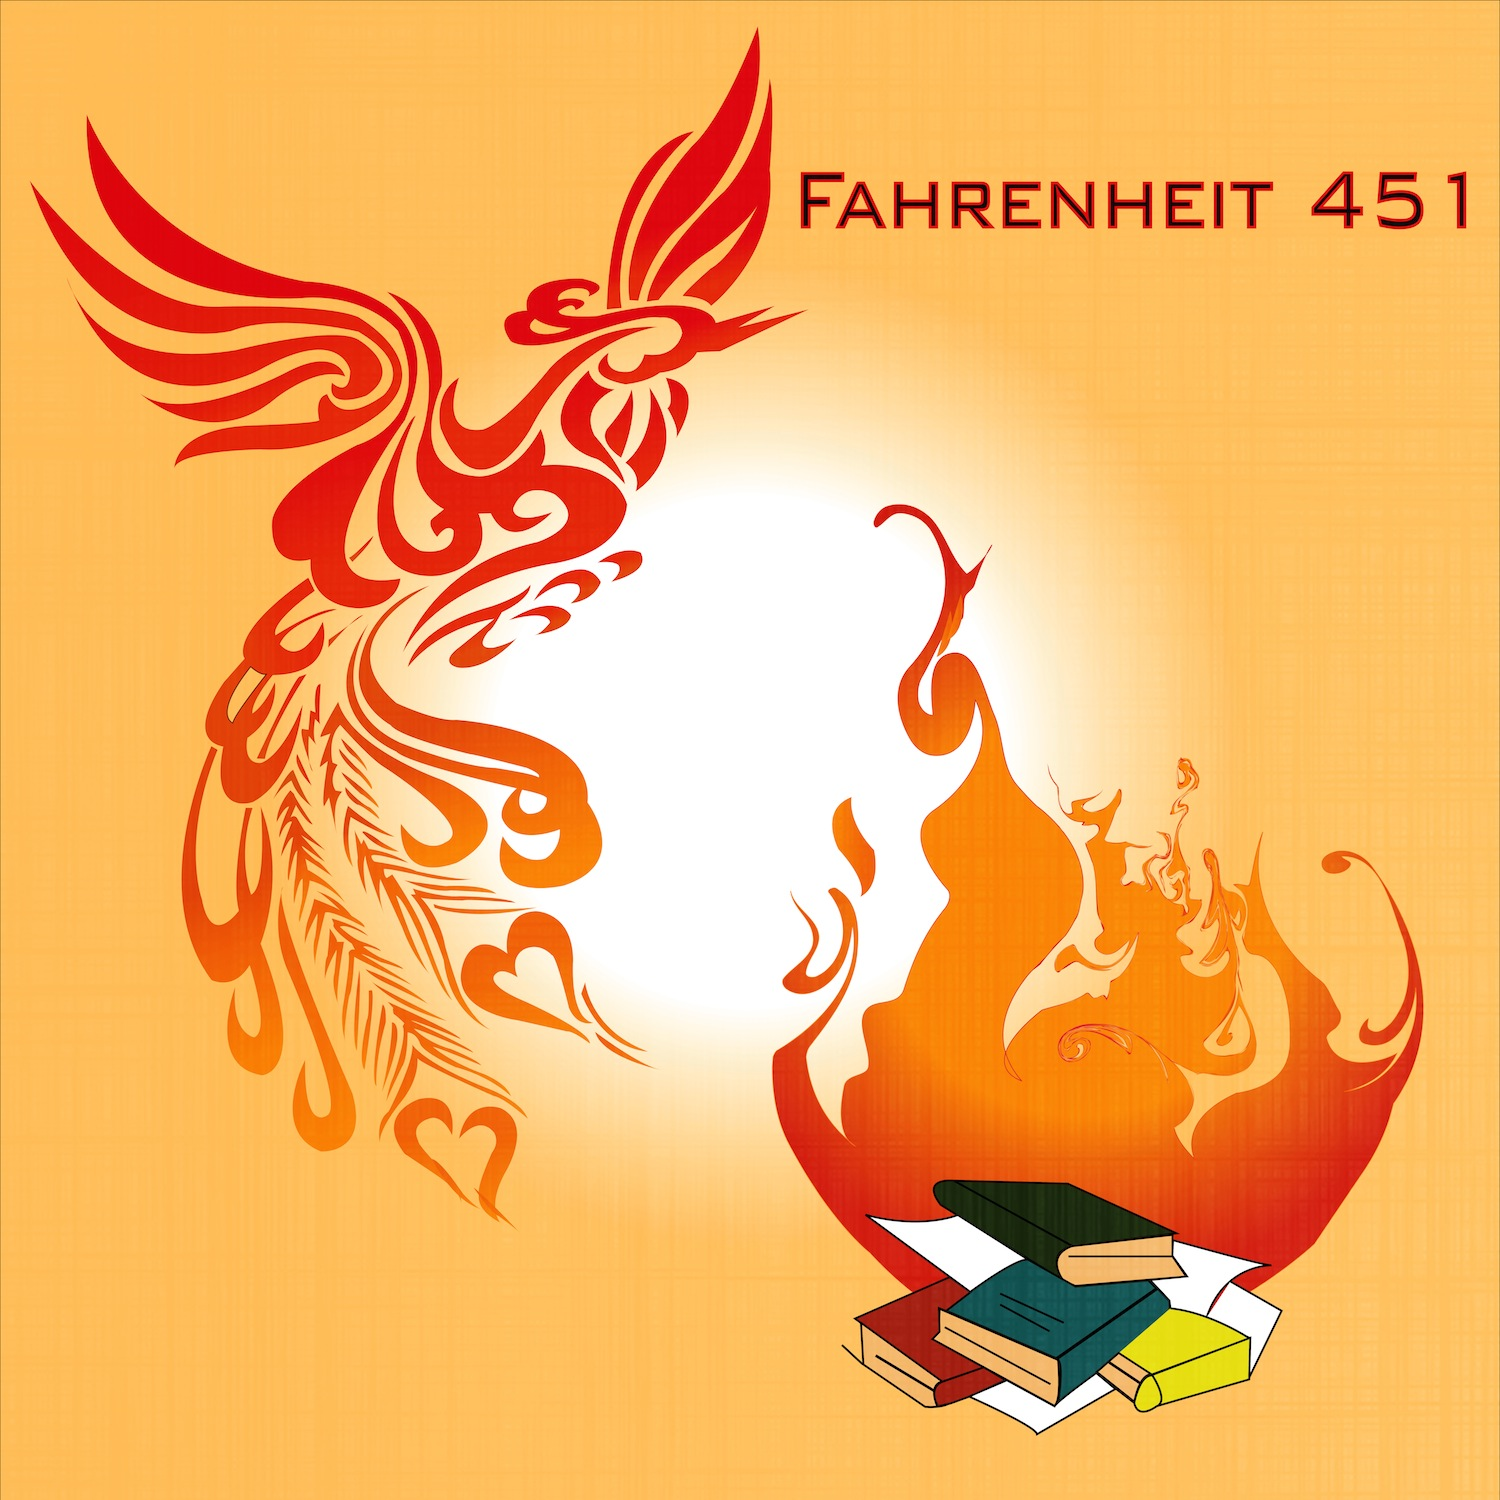 a character analysis of guy montag in fahrenheit 451 a novel by ray bradbury Guy montag was a fireman whose job it was to start fires fahrenheit 451, a novel fahrenheit 451 is a classic written by ray bradbury.